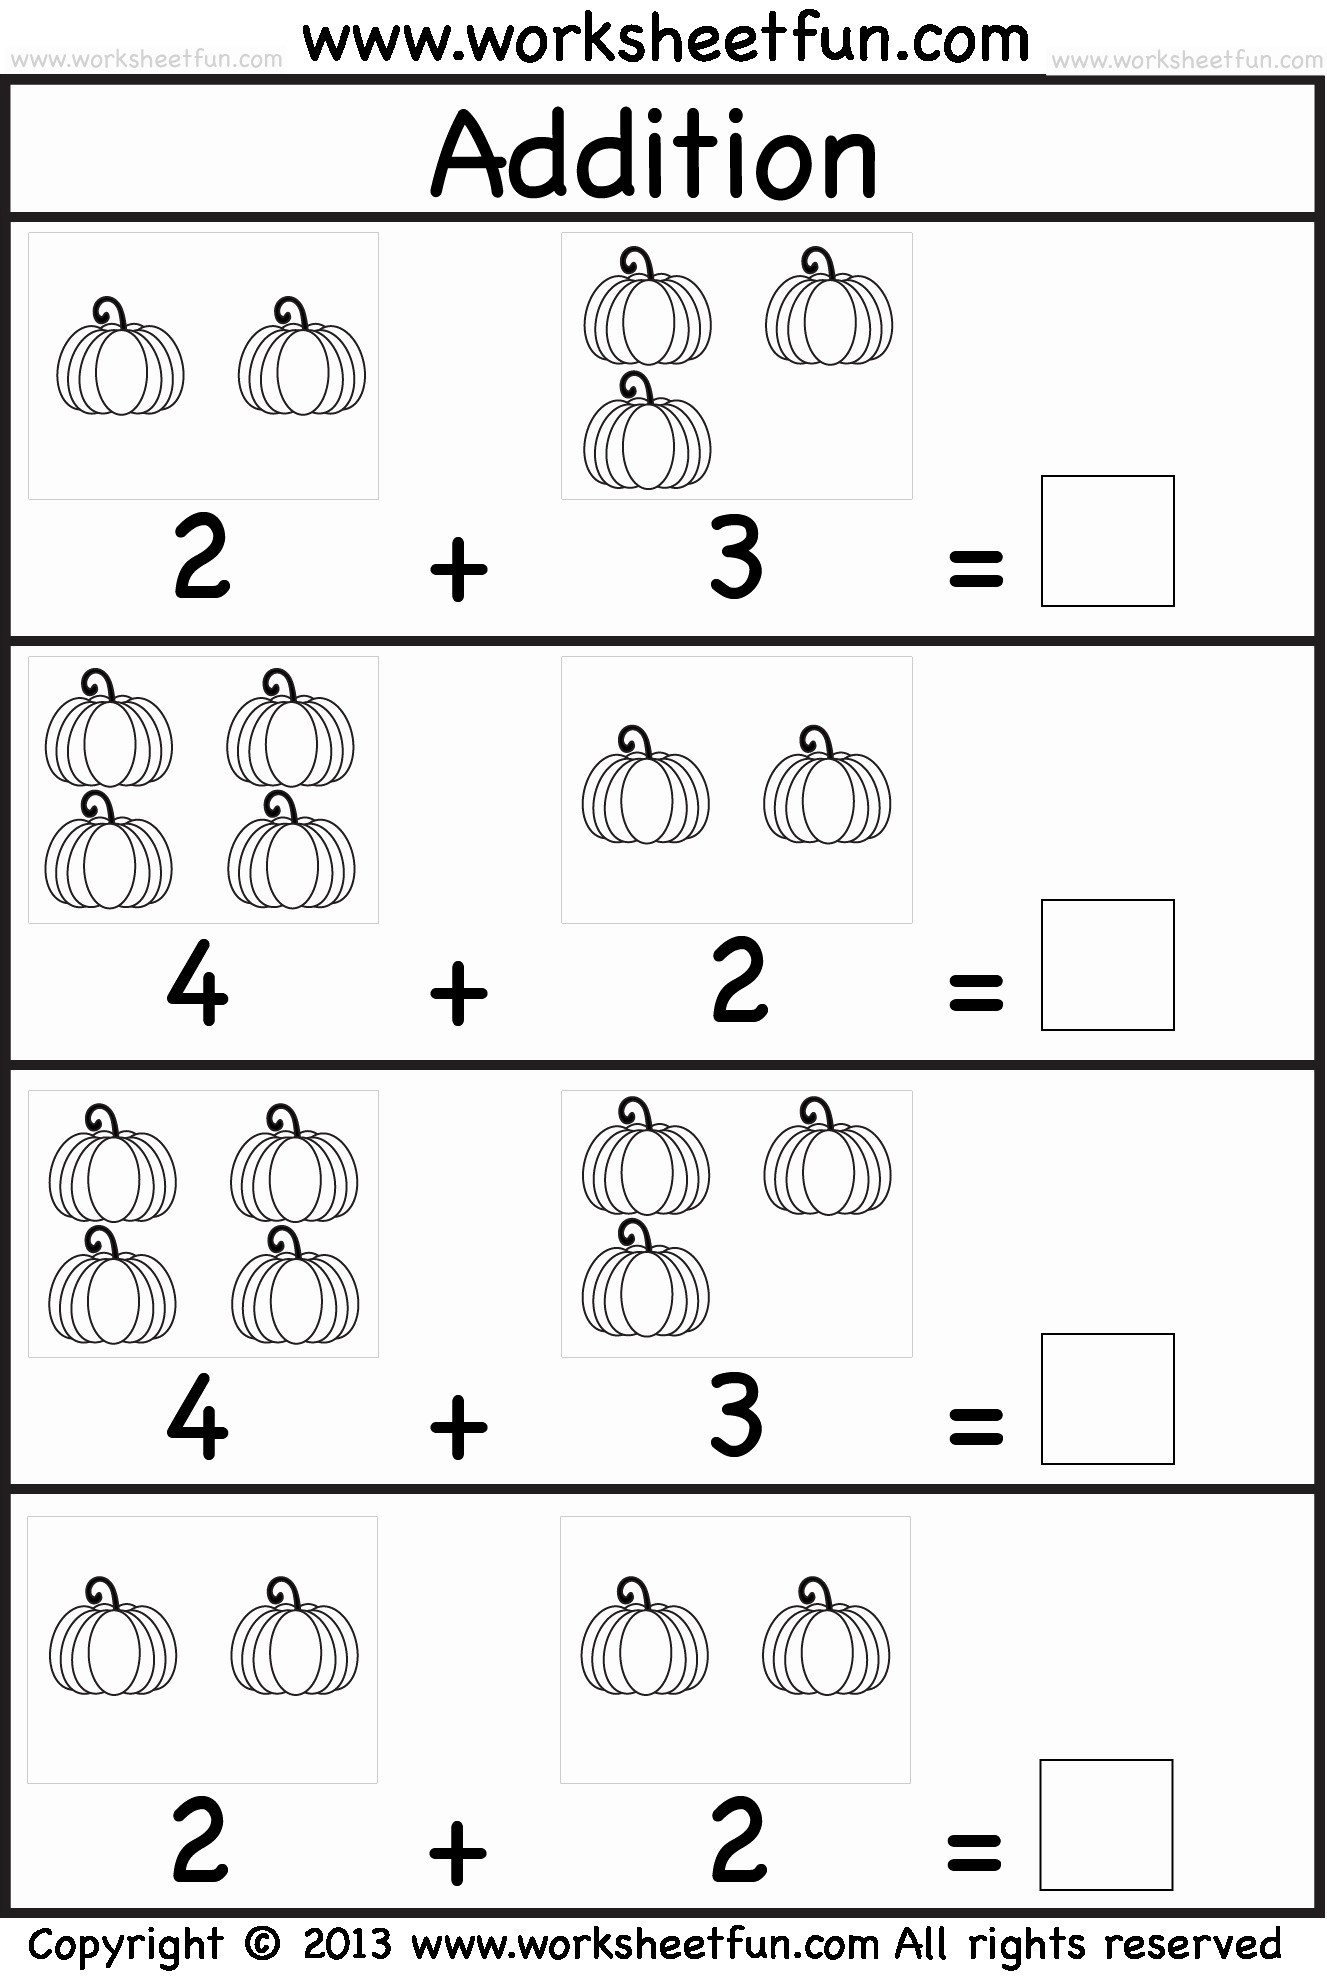 Preschool Math Worksheets Pdf Kindergarten Math Worksheets for Printable Free Sums with